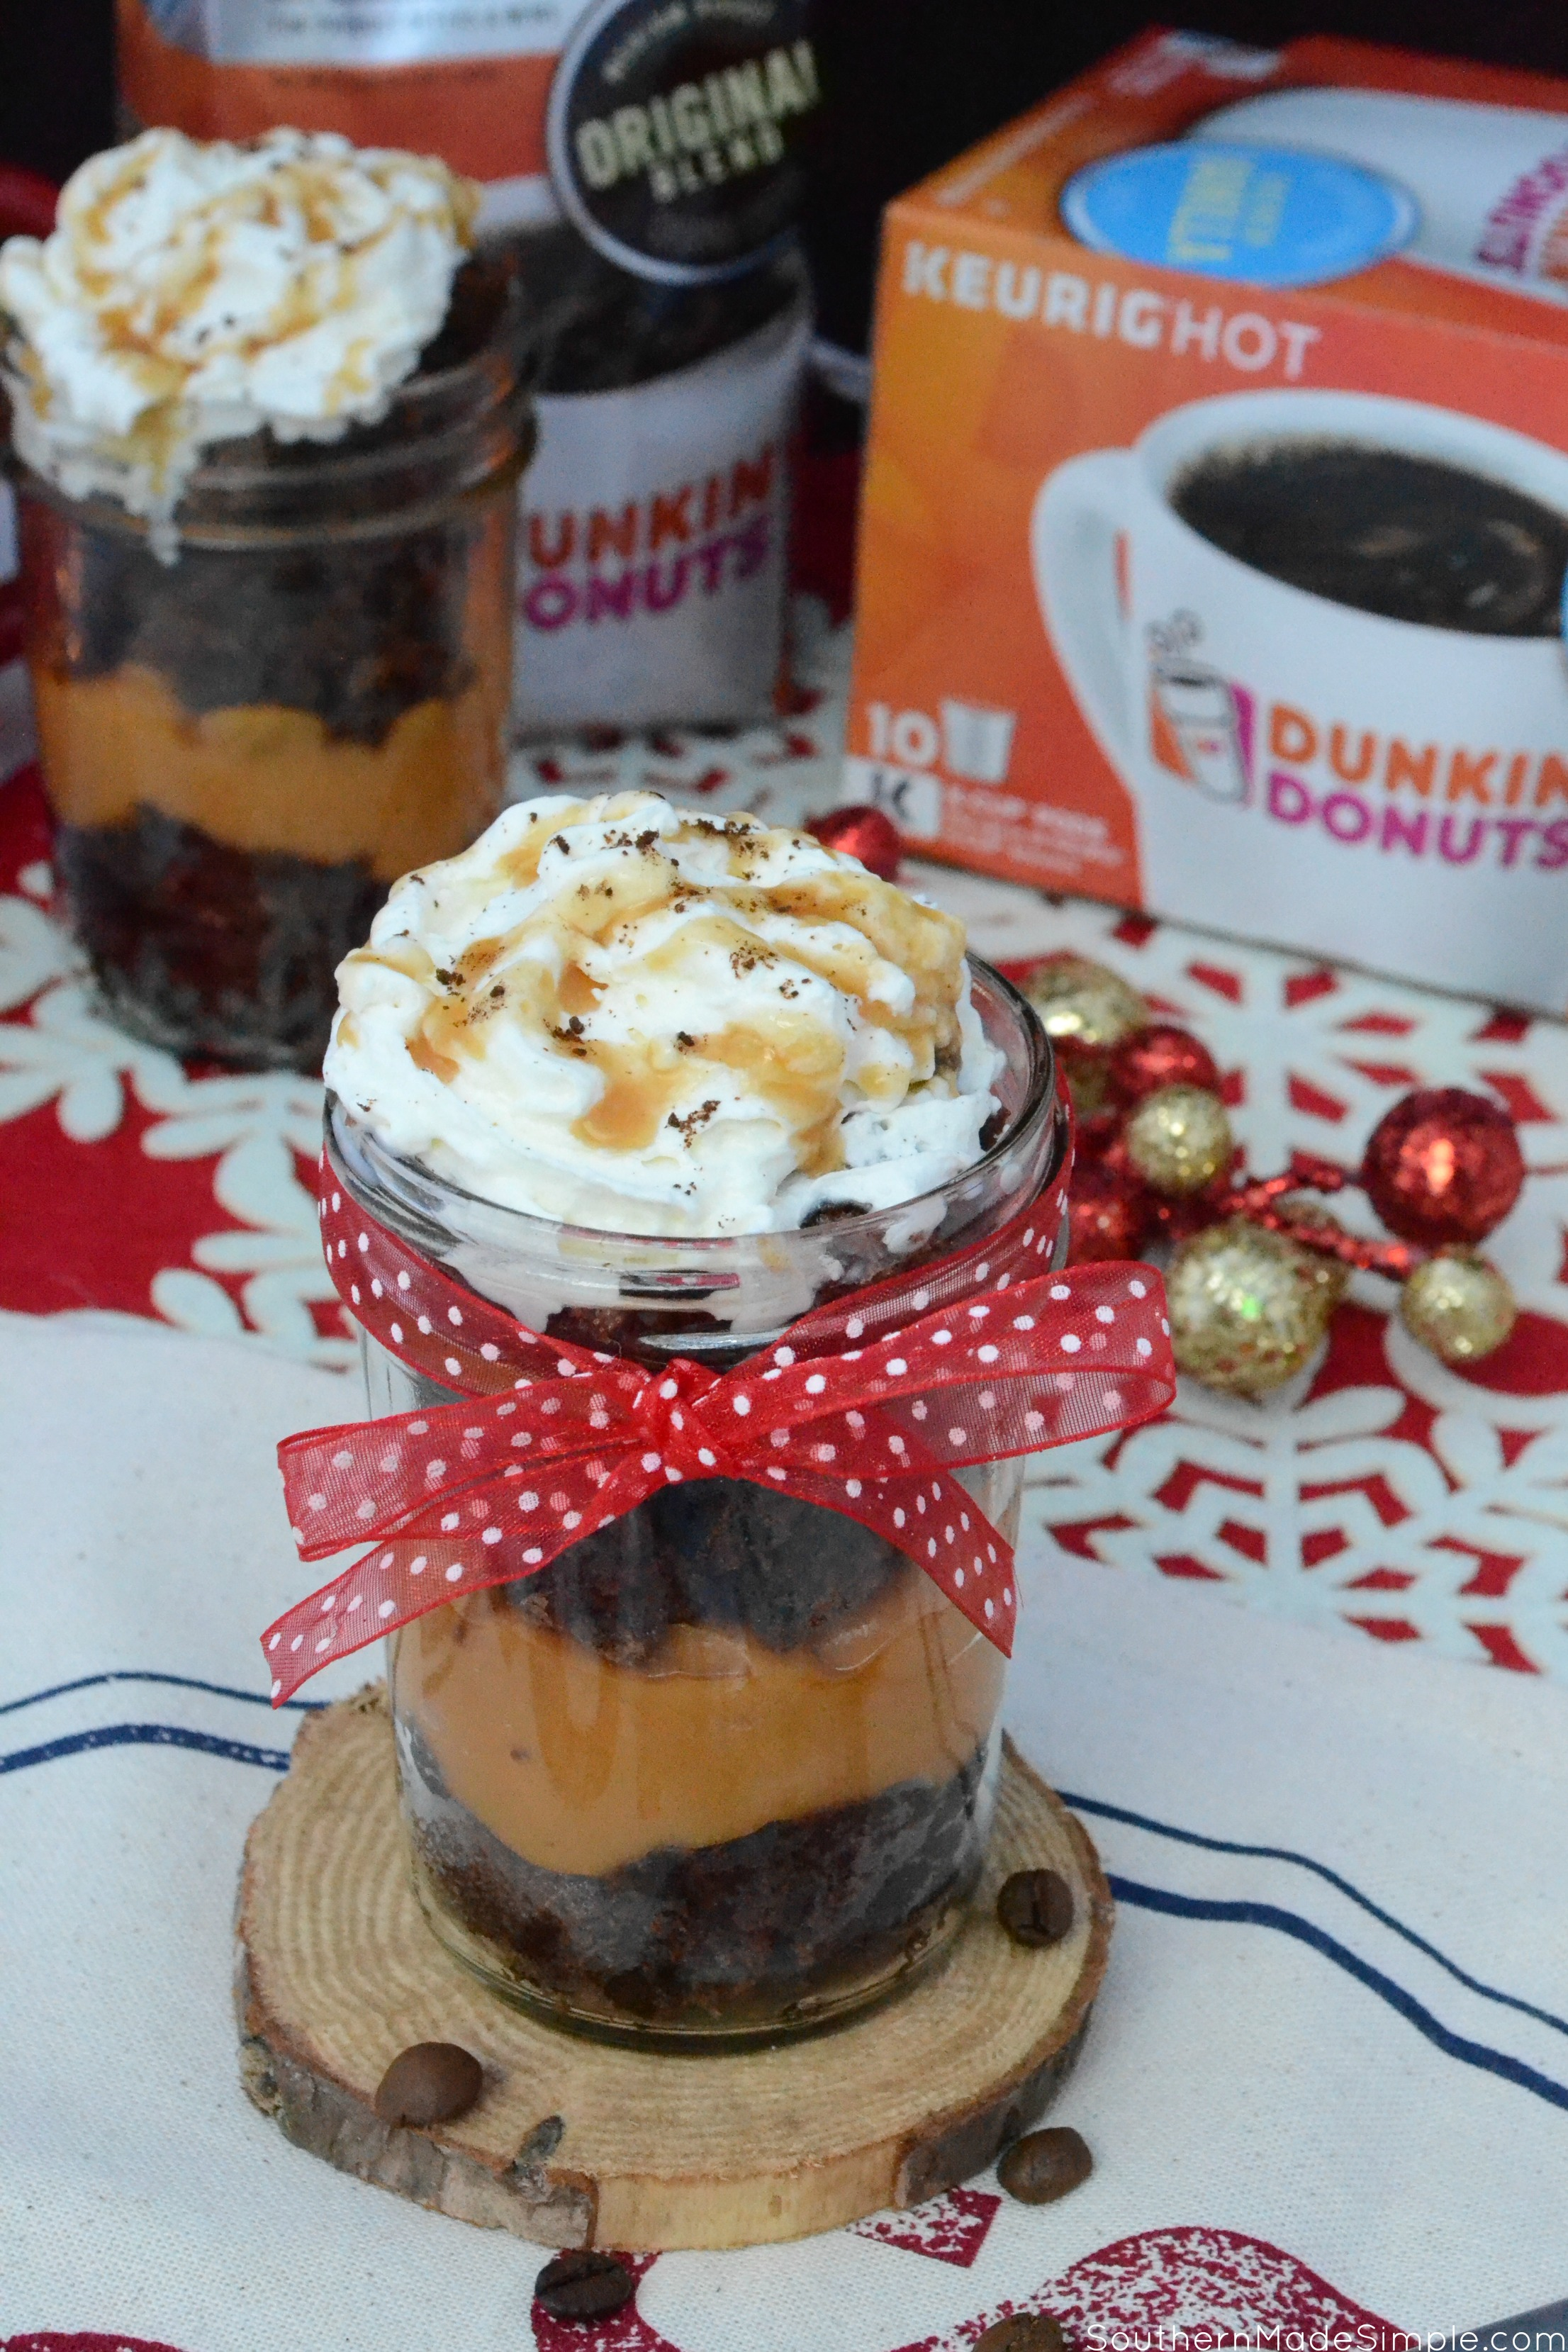 Need a delicious pick-me-up to help you get through the busy holiday season? These coffee infused caramel brownie trifles are the perfect treat to satisfy your sweet tooth! #Ad #GrabHolidayHappiness